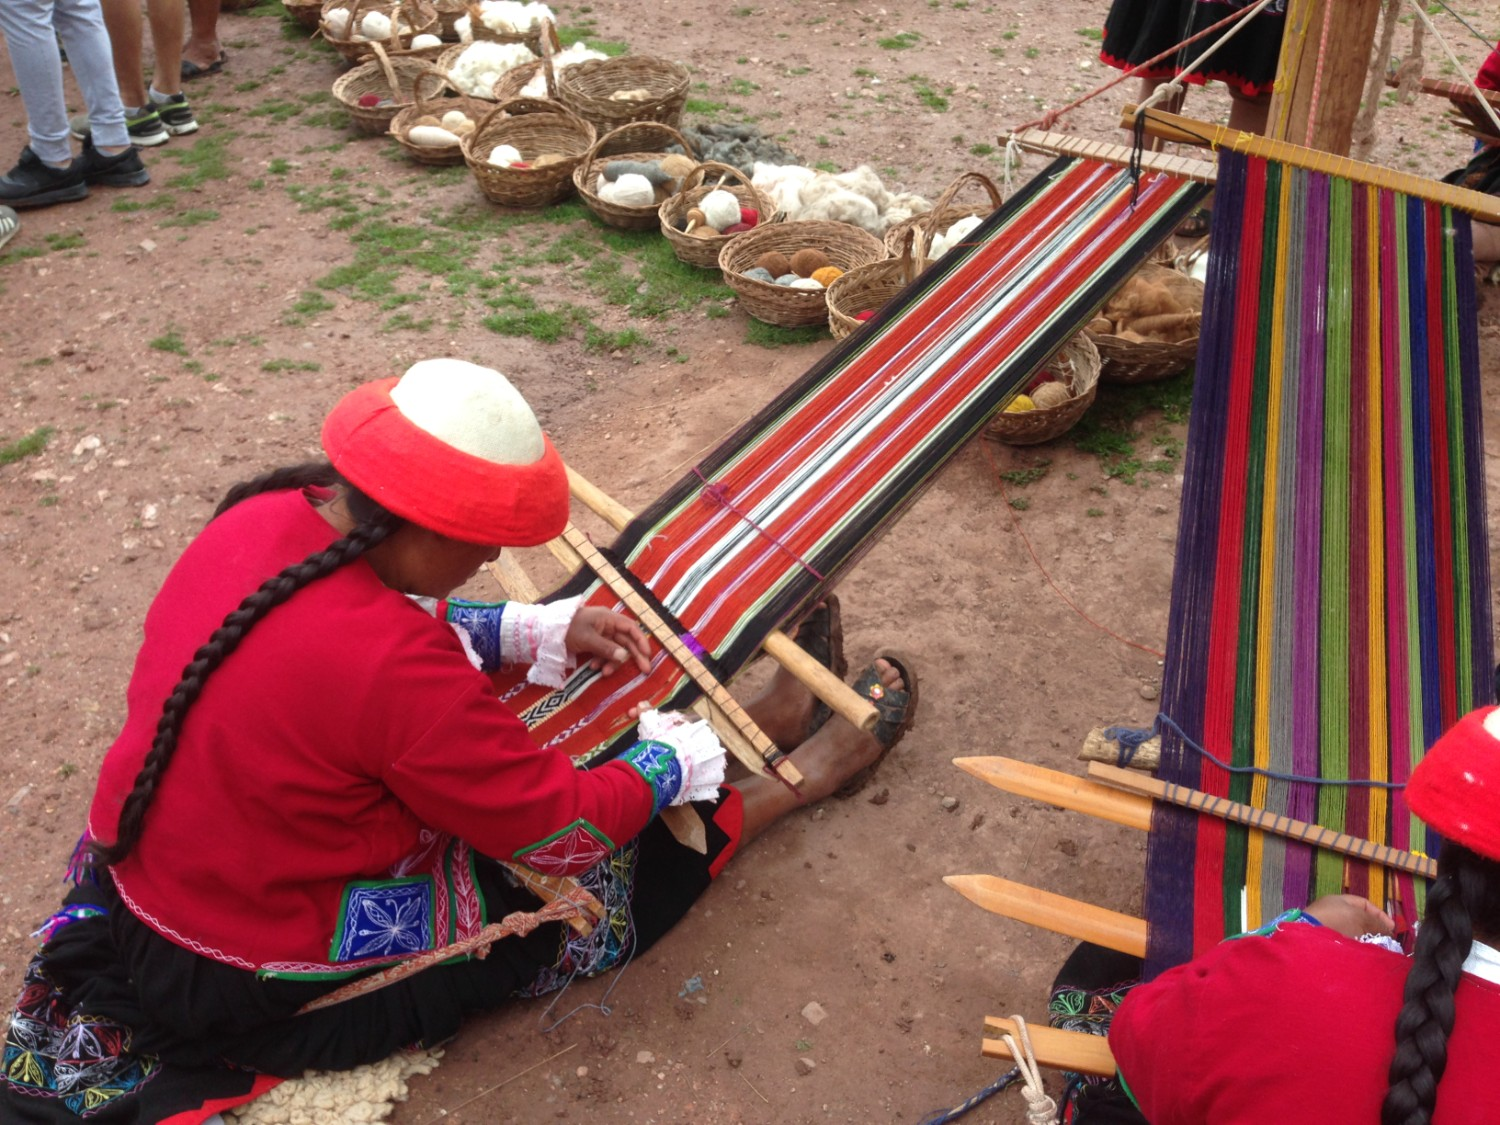 A woman in Ccaccaccollo Peru weaving in the traditional way